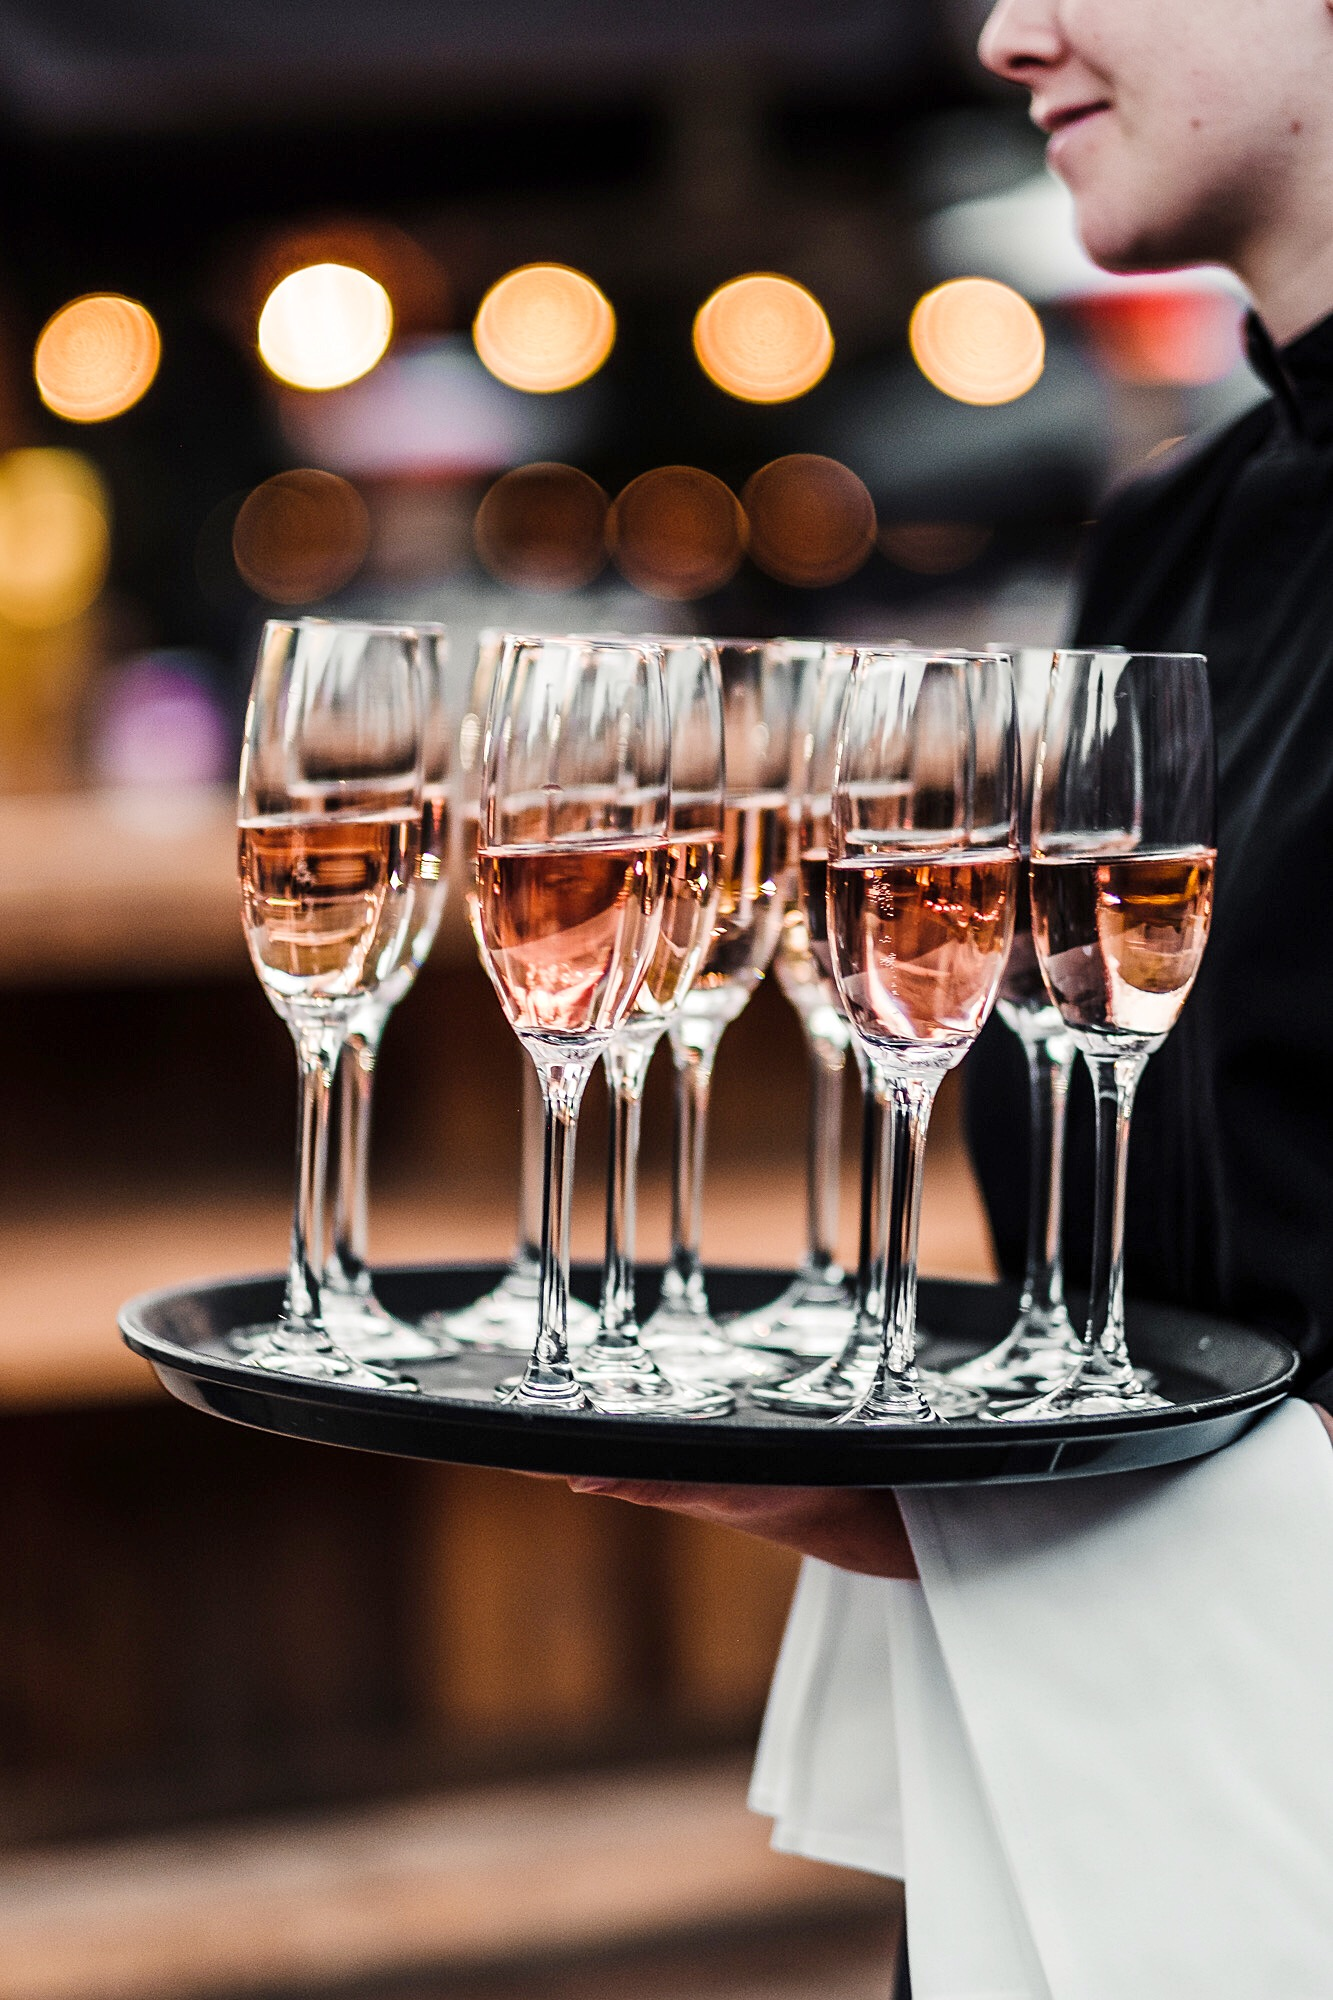 WIN 2 tickets to the SOLD OUT Deviation Road VIP Sparkling Room at Champagne Fest 2019